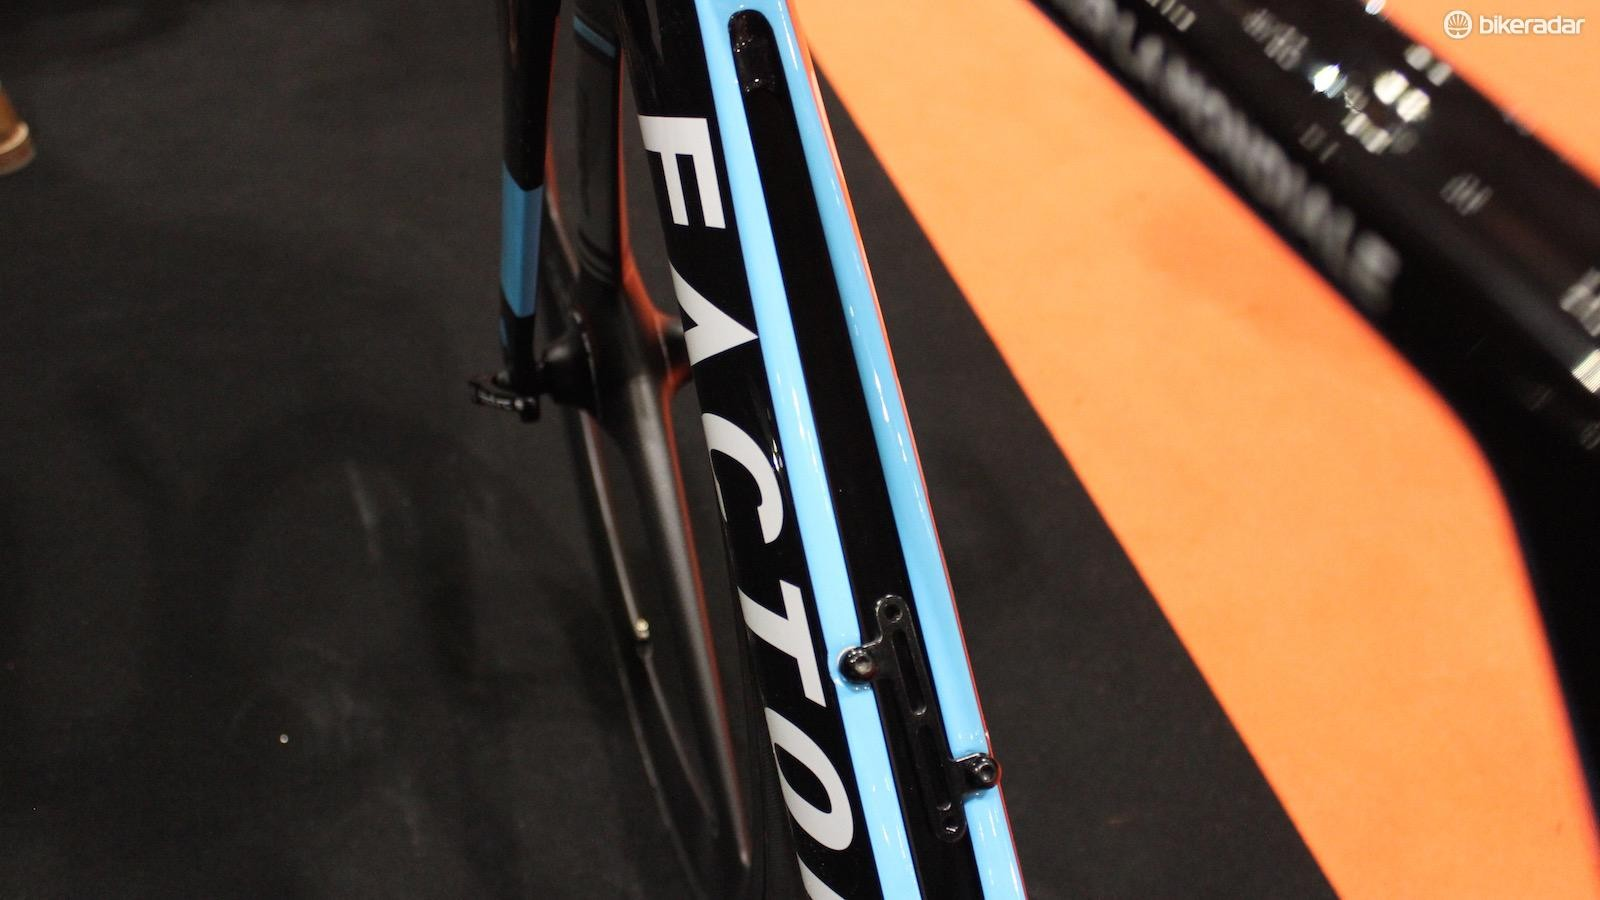 The 'Twin Vane' downtube allows air to flow through the frame and produce less wind resistance